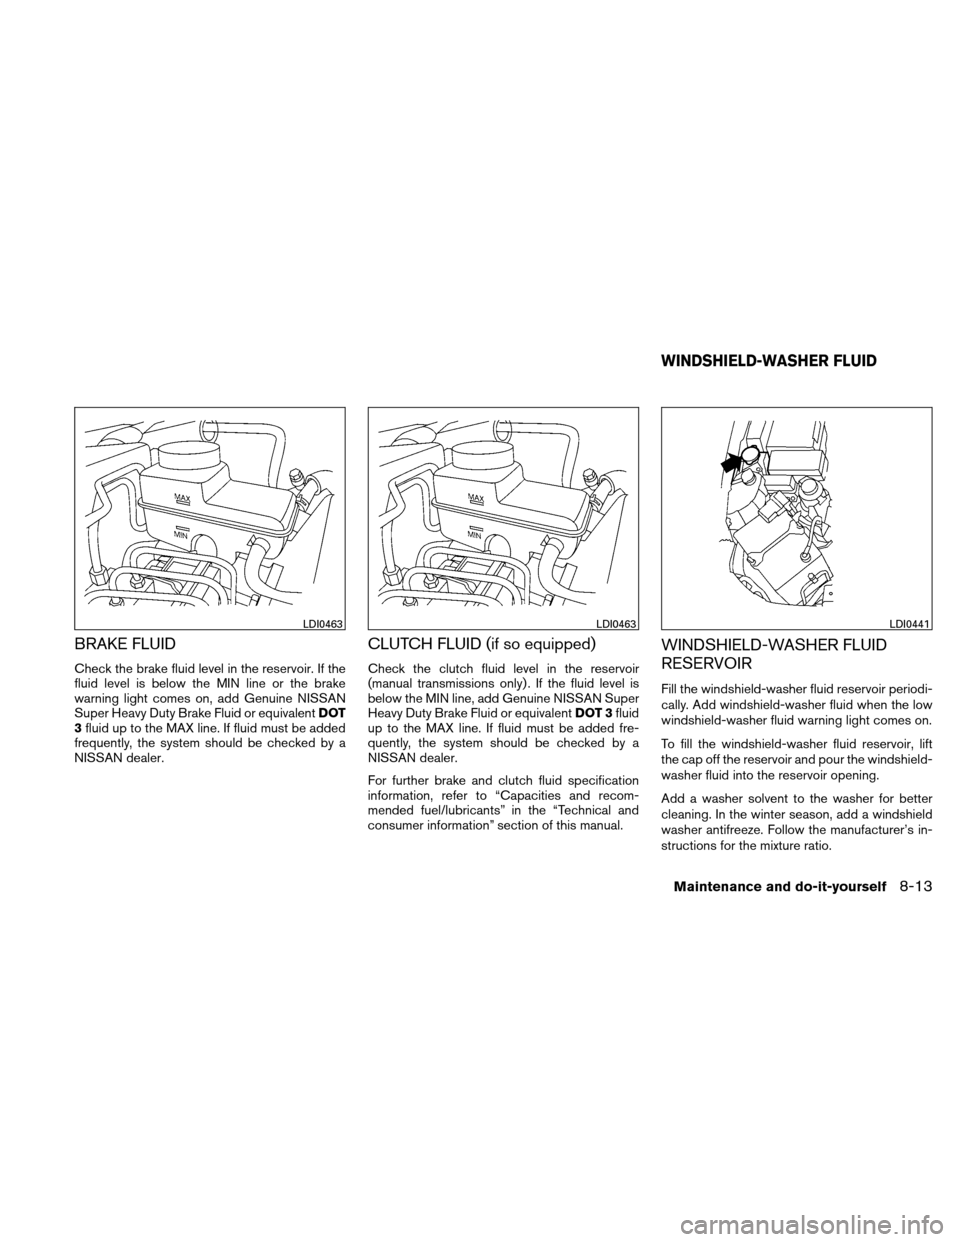 NISSAN XTERRA 2011 N50 / 2.G Owners Manual BRAKE FLUID Check the brake fluid level in the reservoir. If the fluid level is below the MIN line or the brake warning light comes on, add Genuine NISSAN Super Heavy Duty Brake Fluid or equivalentDOT